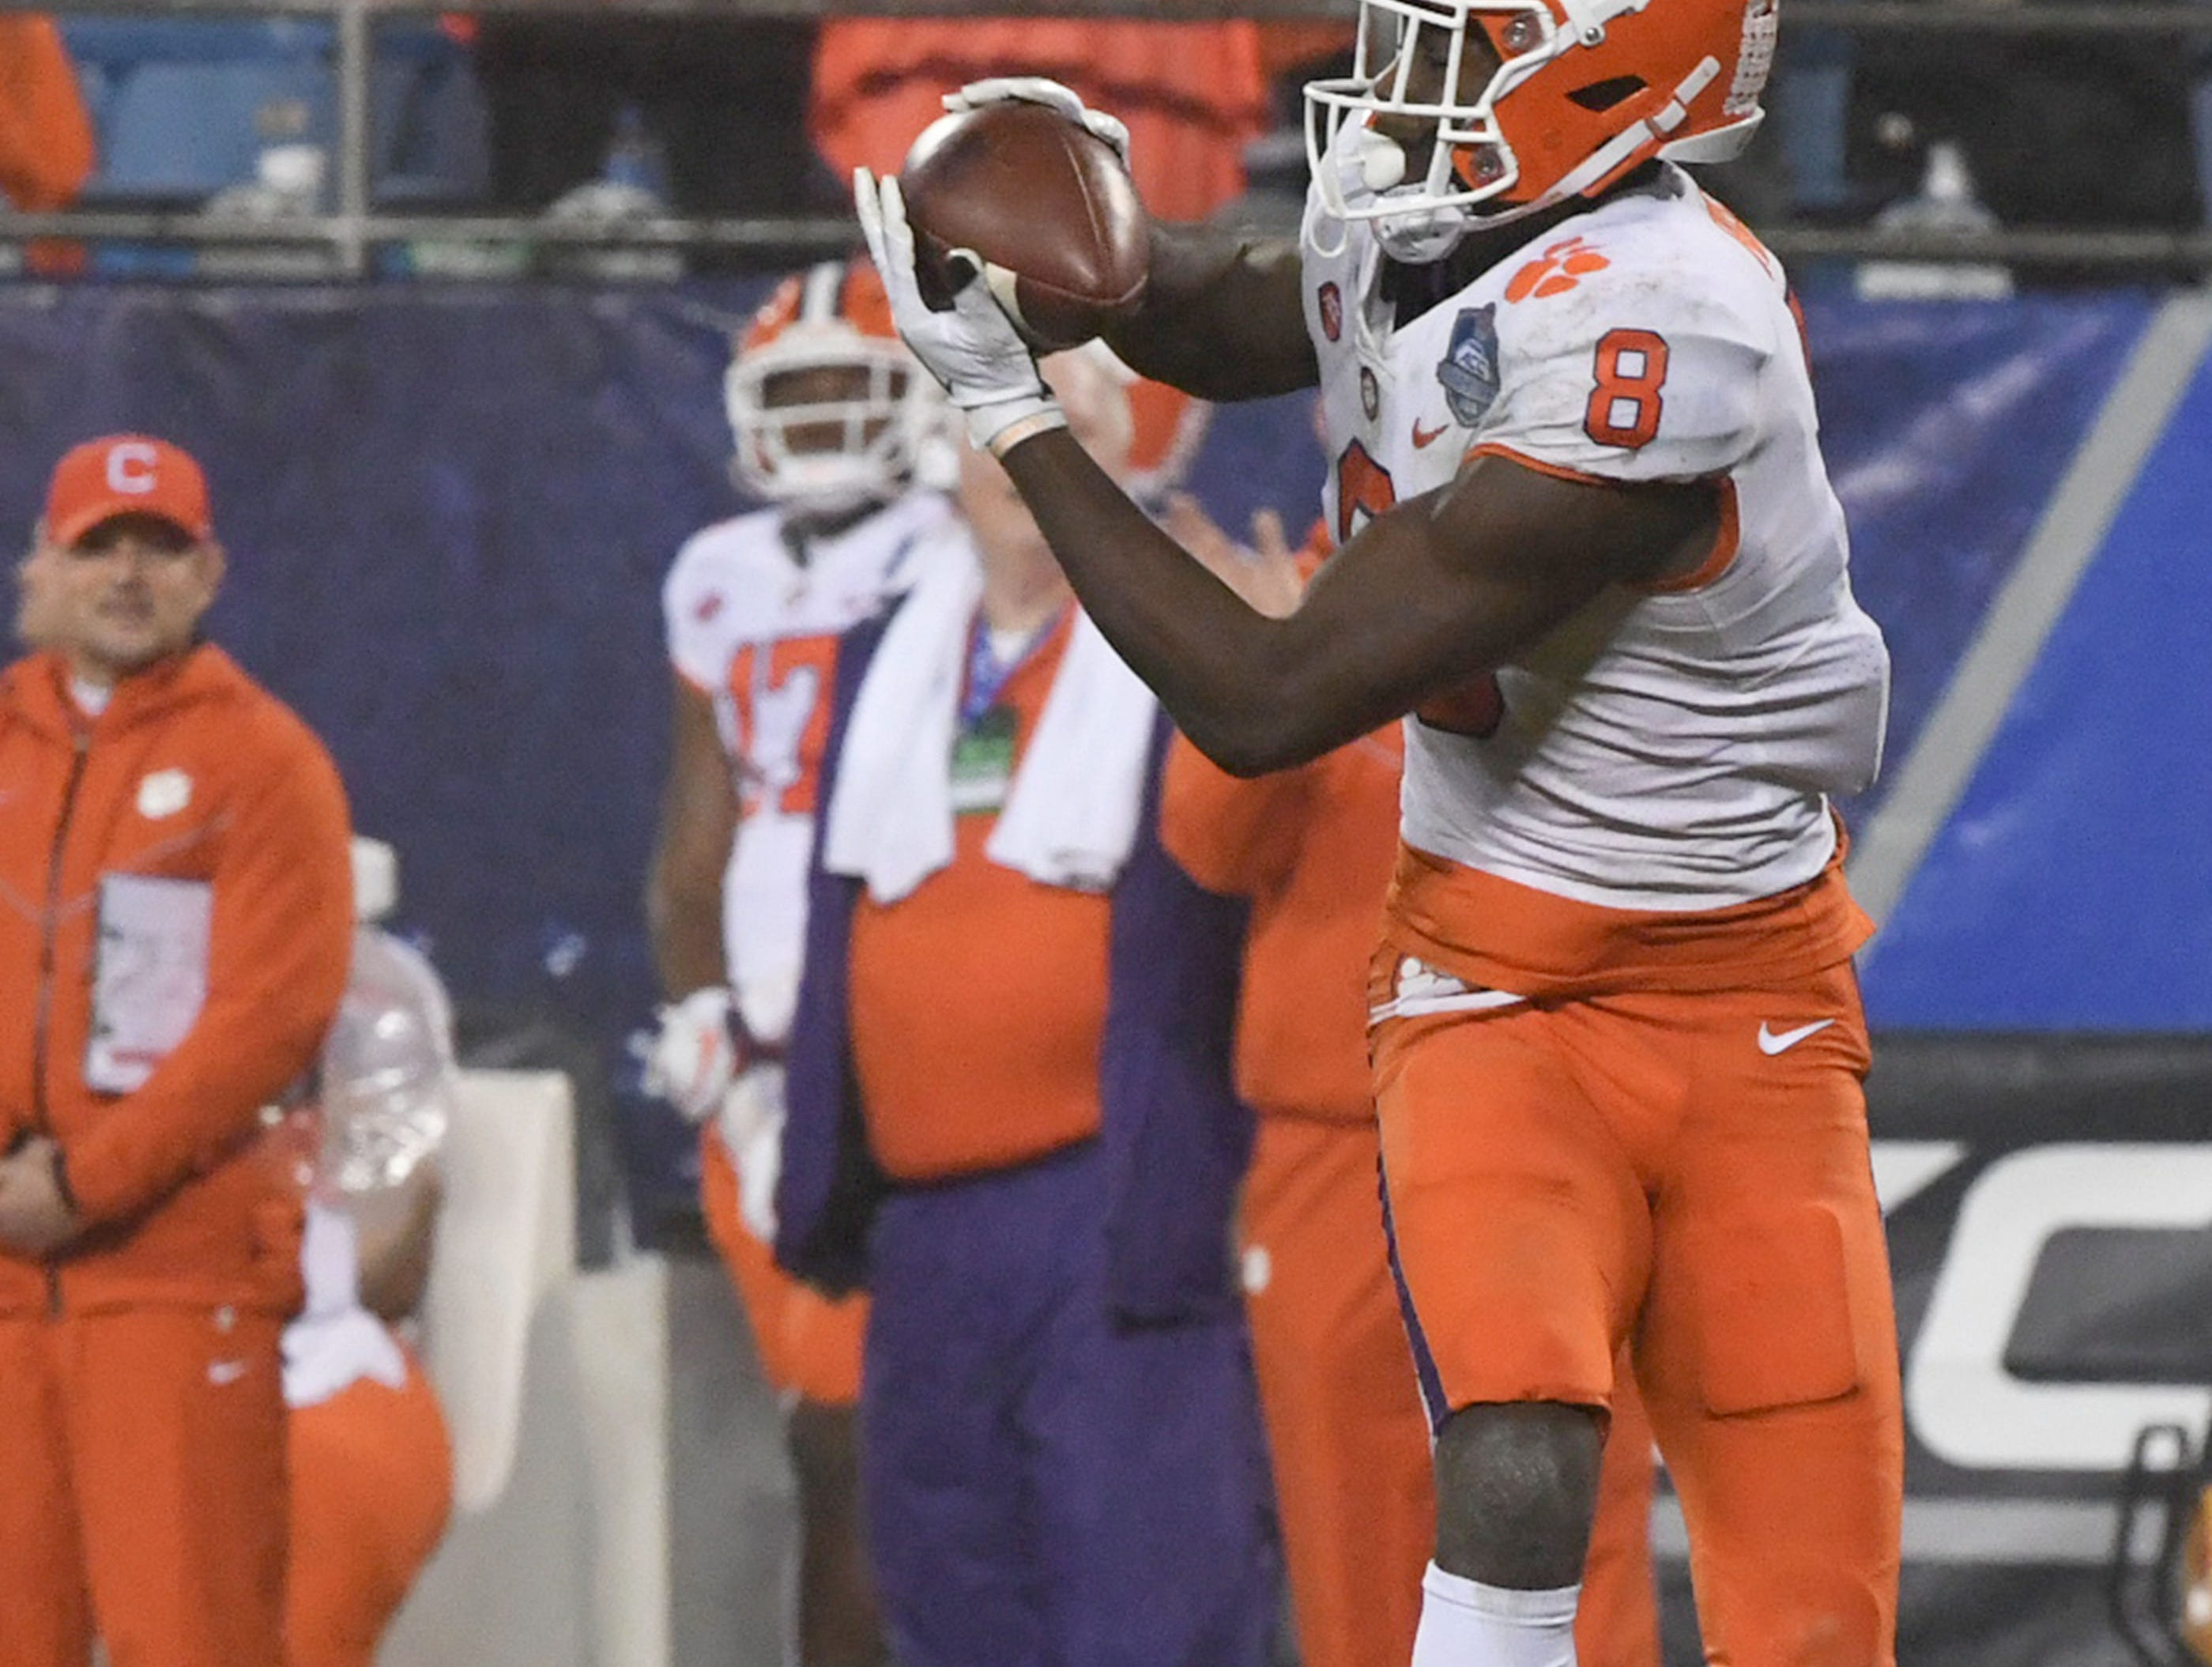 Clemson wide receiver Justyn Ross (8) catches a long pass against Pittsburgh during the third quarter of the Dr. Pepper ACC football championship at Bank of America Stadium in Charlotte, N.C. on Saturday, December 1, 2018.